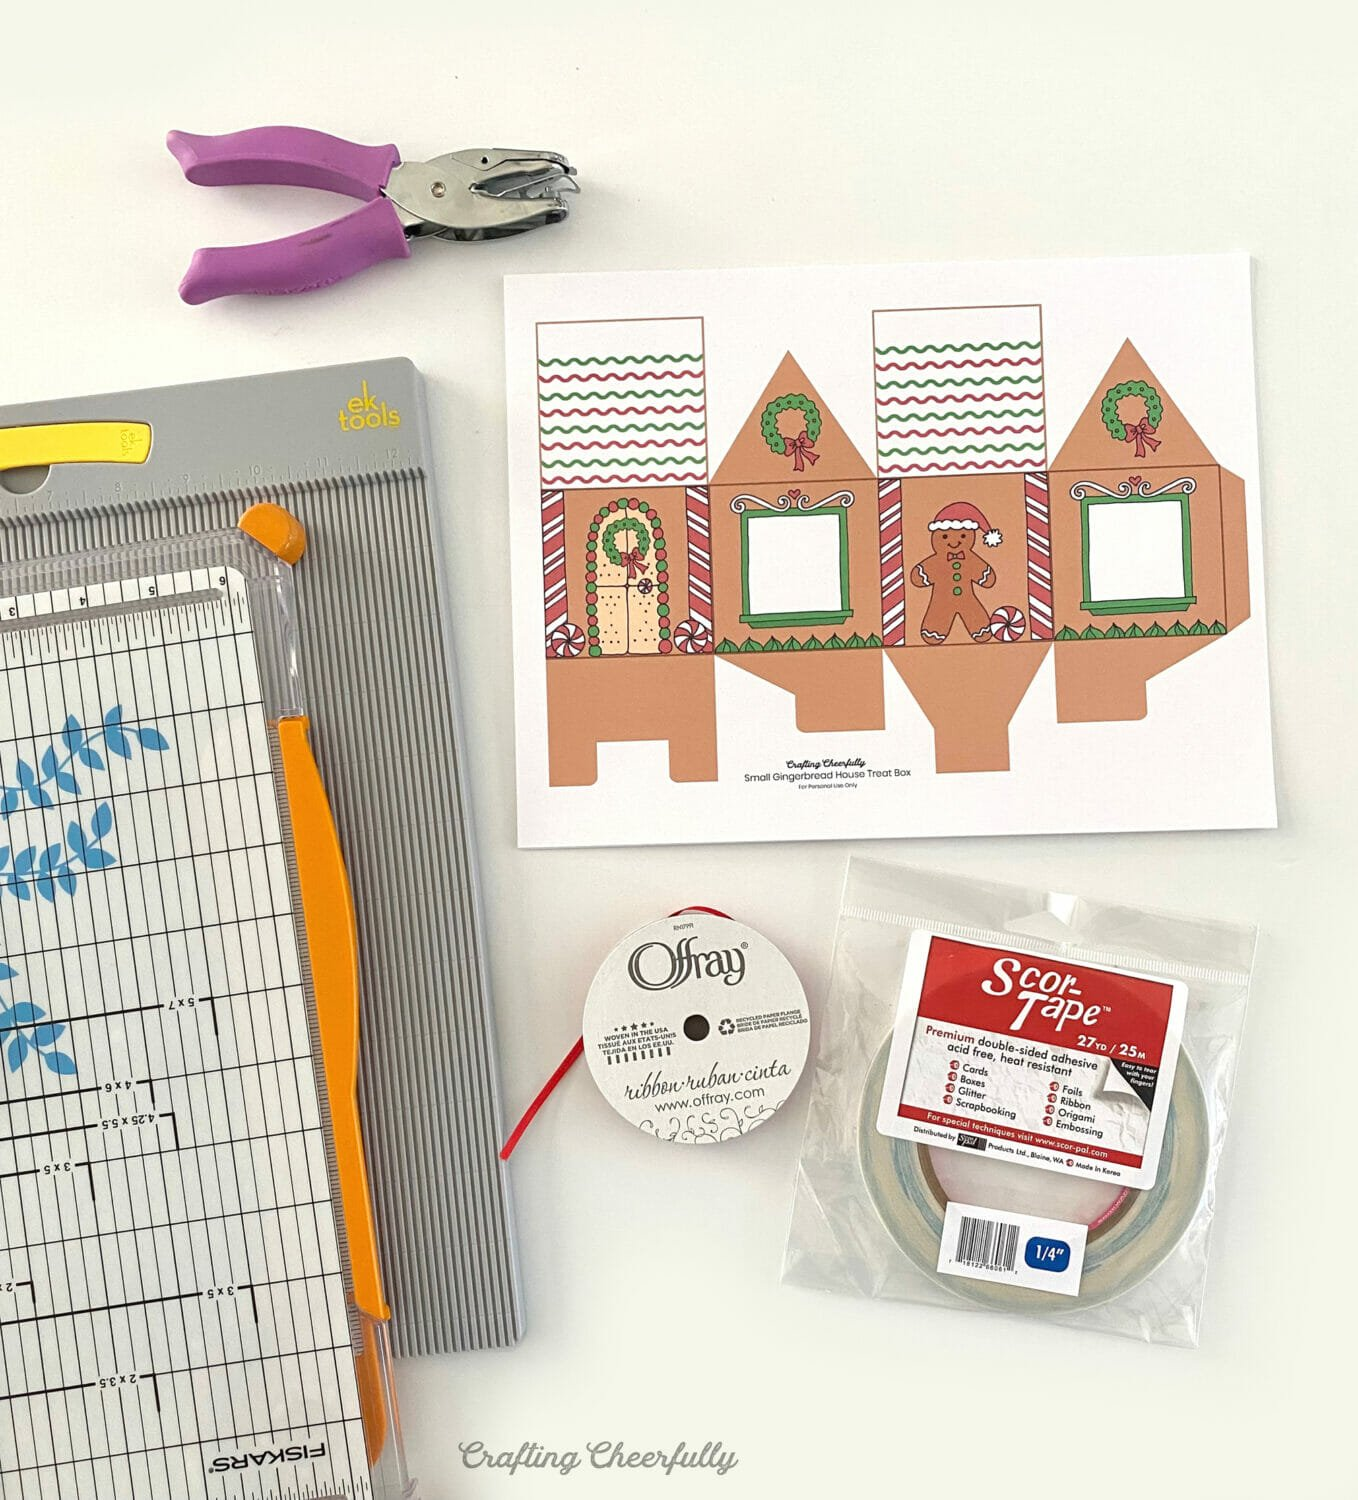 Supplies needed for the gingerbread house treat boxes like a hole punch, paper trimmer, double-sided tape and scoring board.